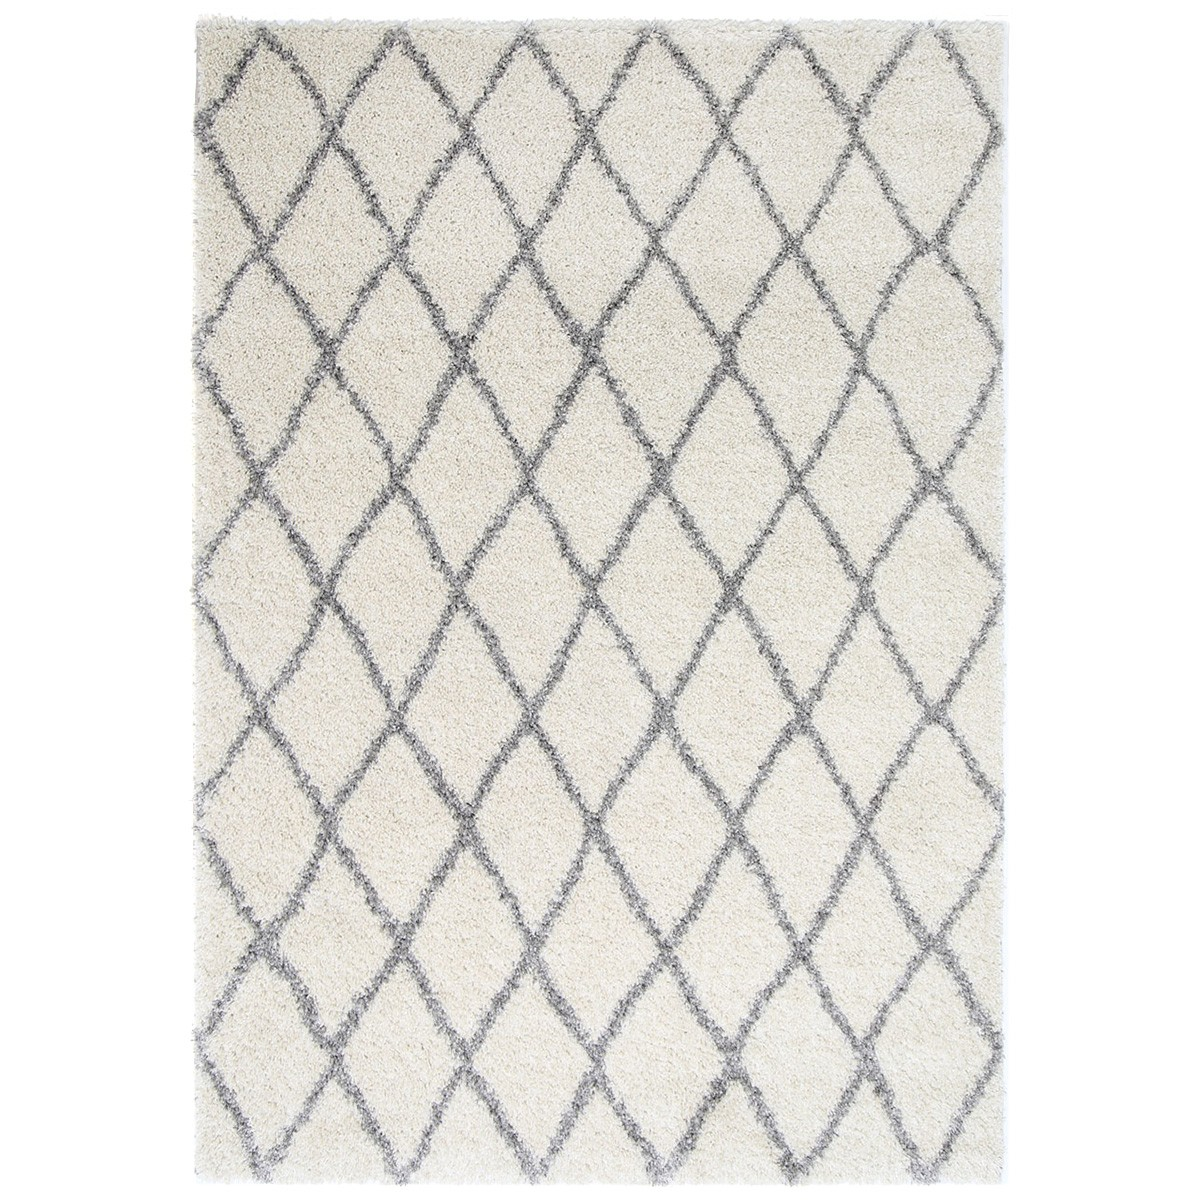 Siesta Diamond Shaggy Rug, 200x290cm, Cream/Grey